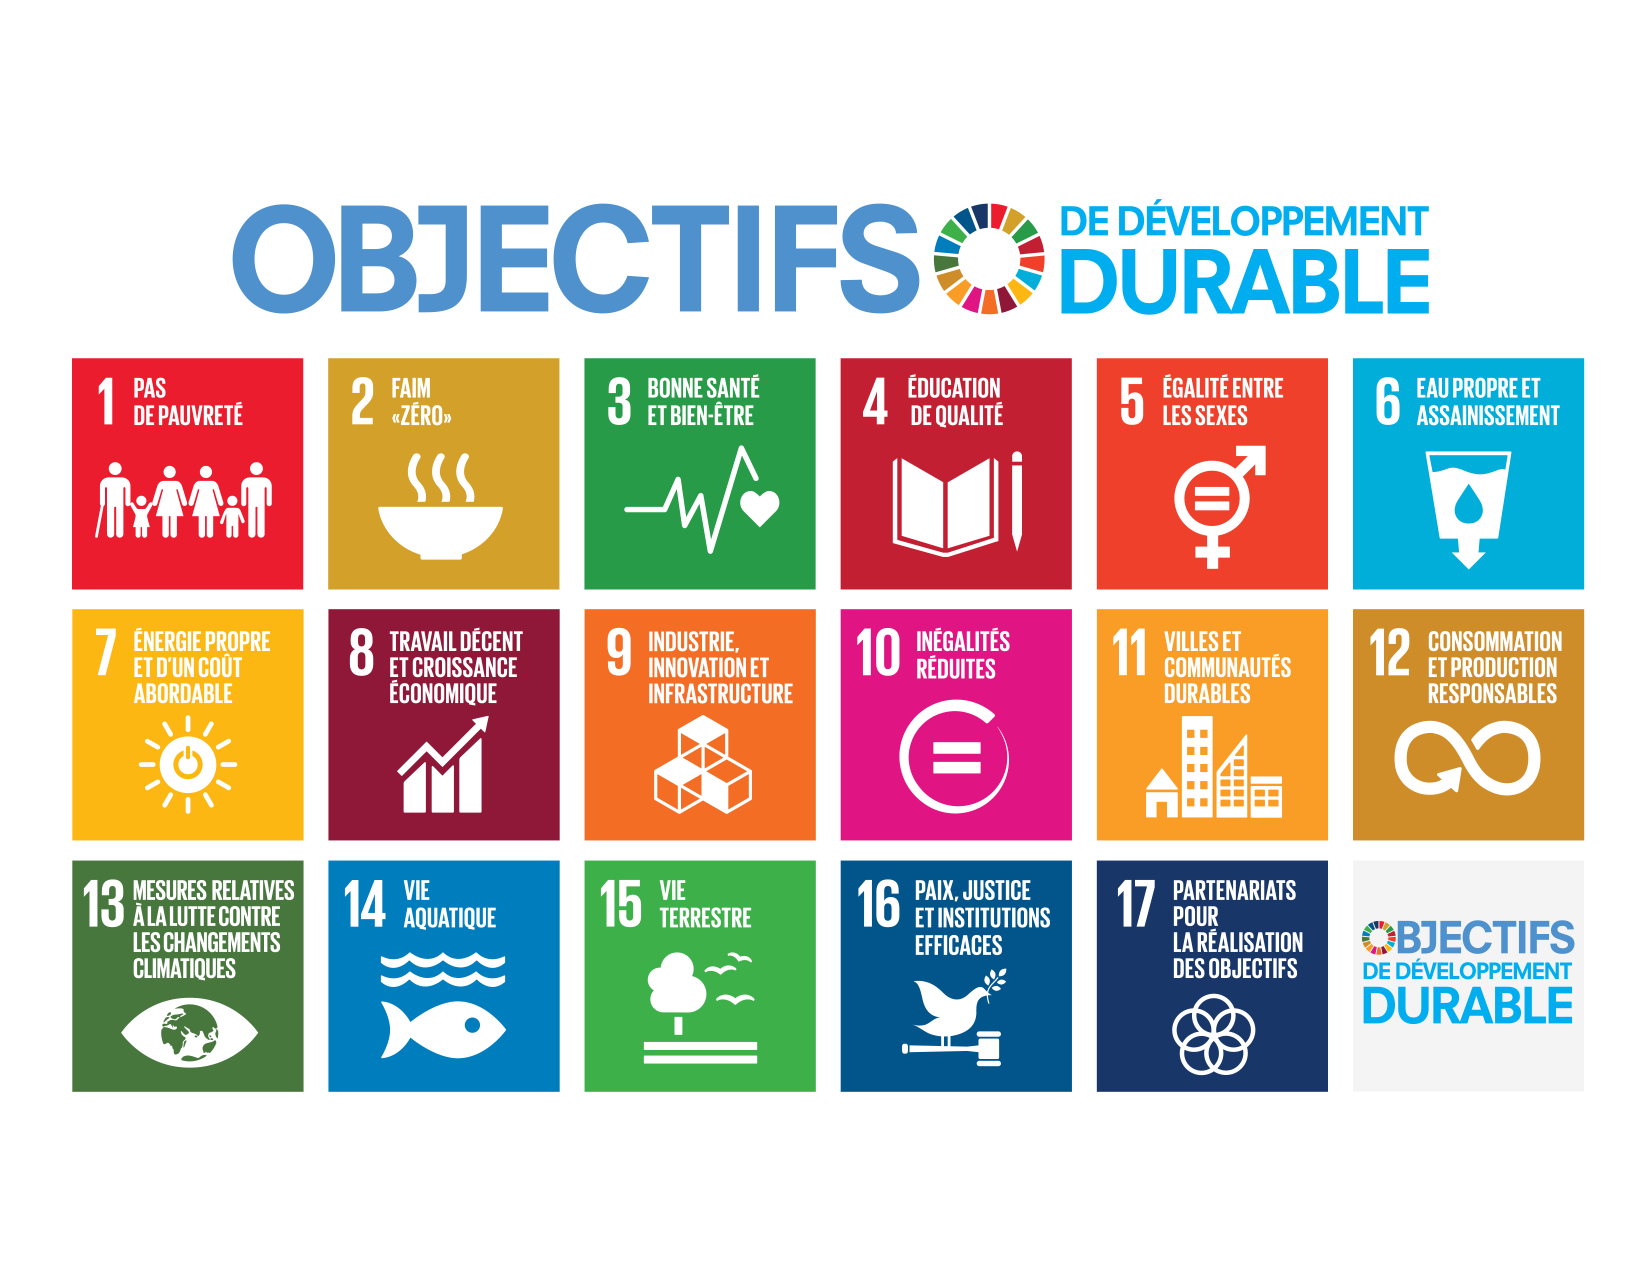 1 3 Supporting Dev Priorites SDGs FR